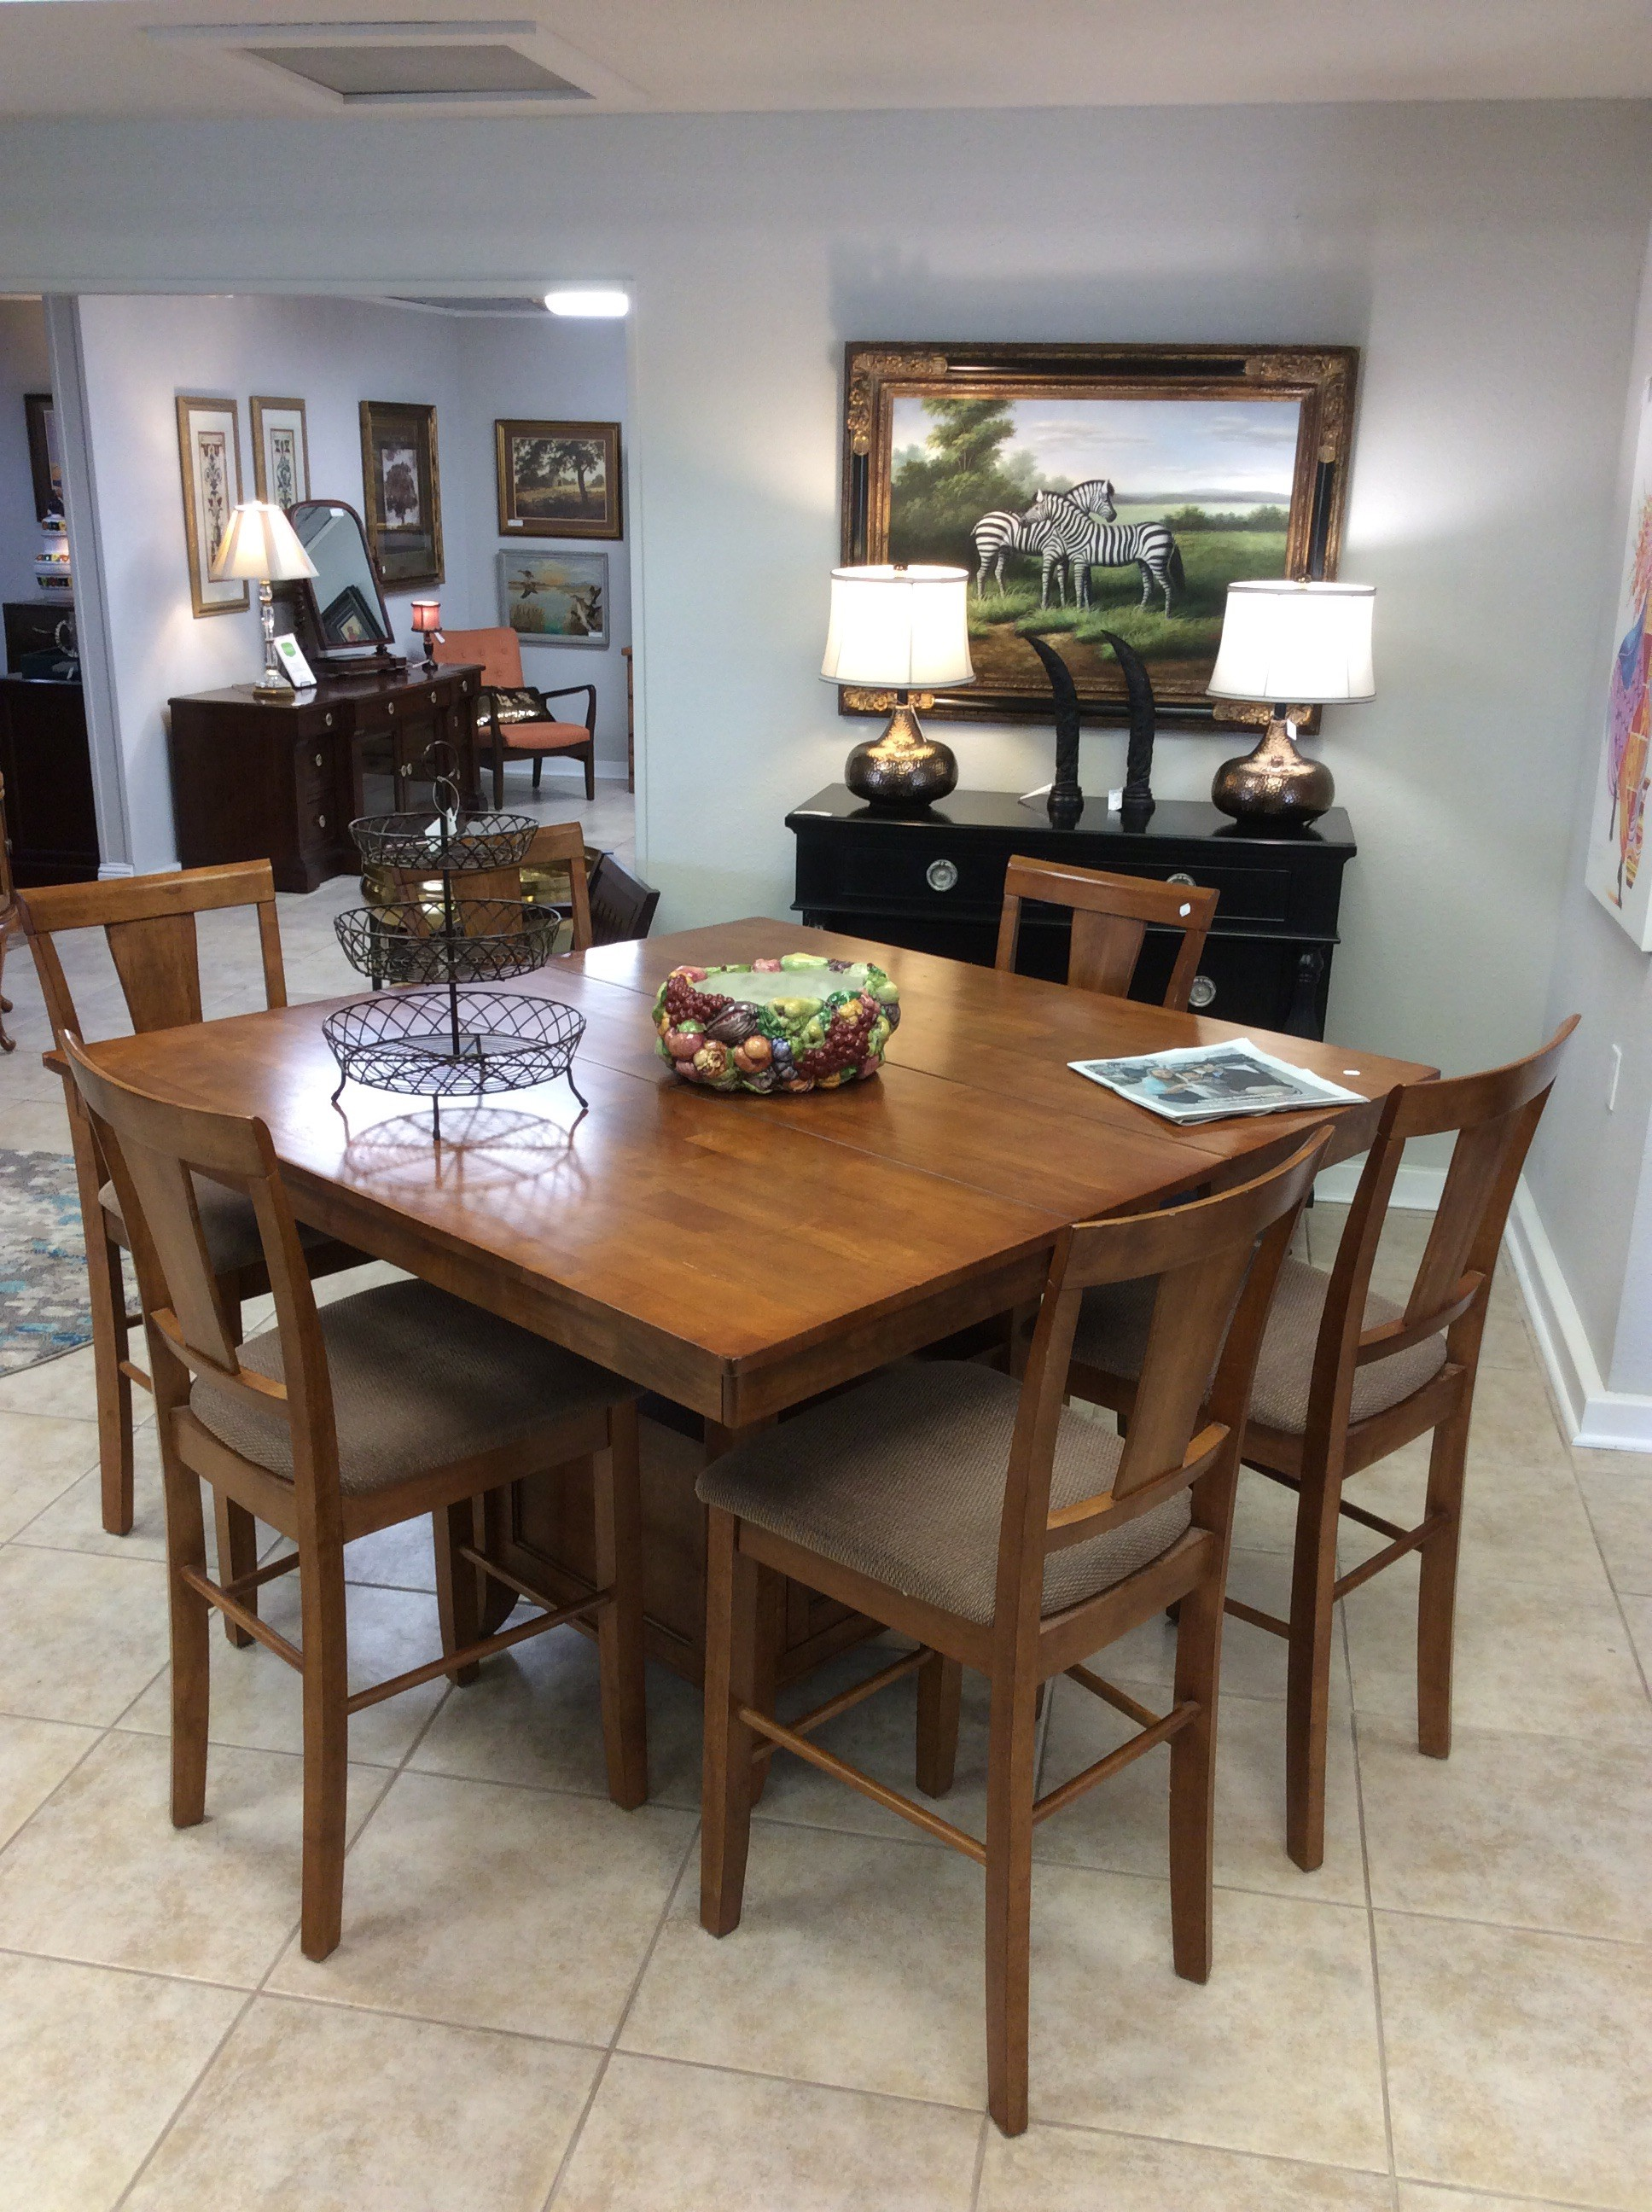 "BARGAIN ALERT!!! This dining set is quite versatile. The table is in good condition and has a self-contained 12"" butterfly leaf, that when in use, makes the table a 54"" square. It also has a shelf and a cabinet in the table base. The 6 chairs feature a neutral taupe colored upholstery that is also in good condition. Priced to move at only $495!!"